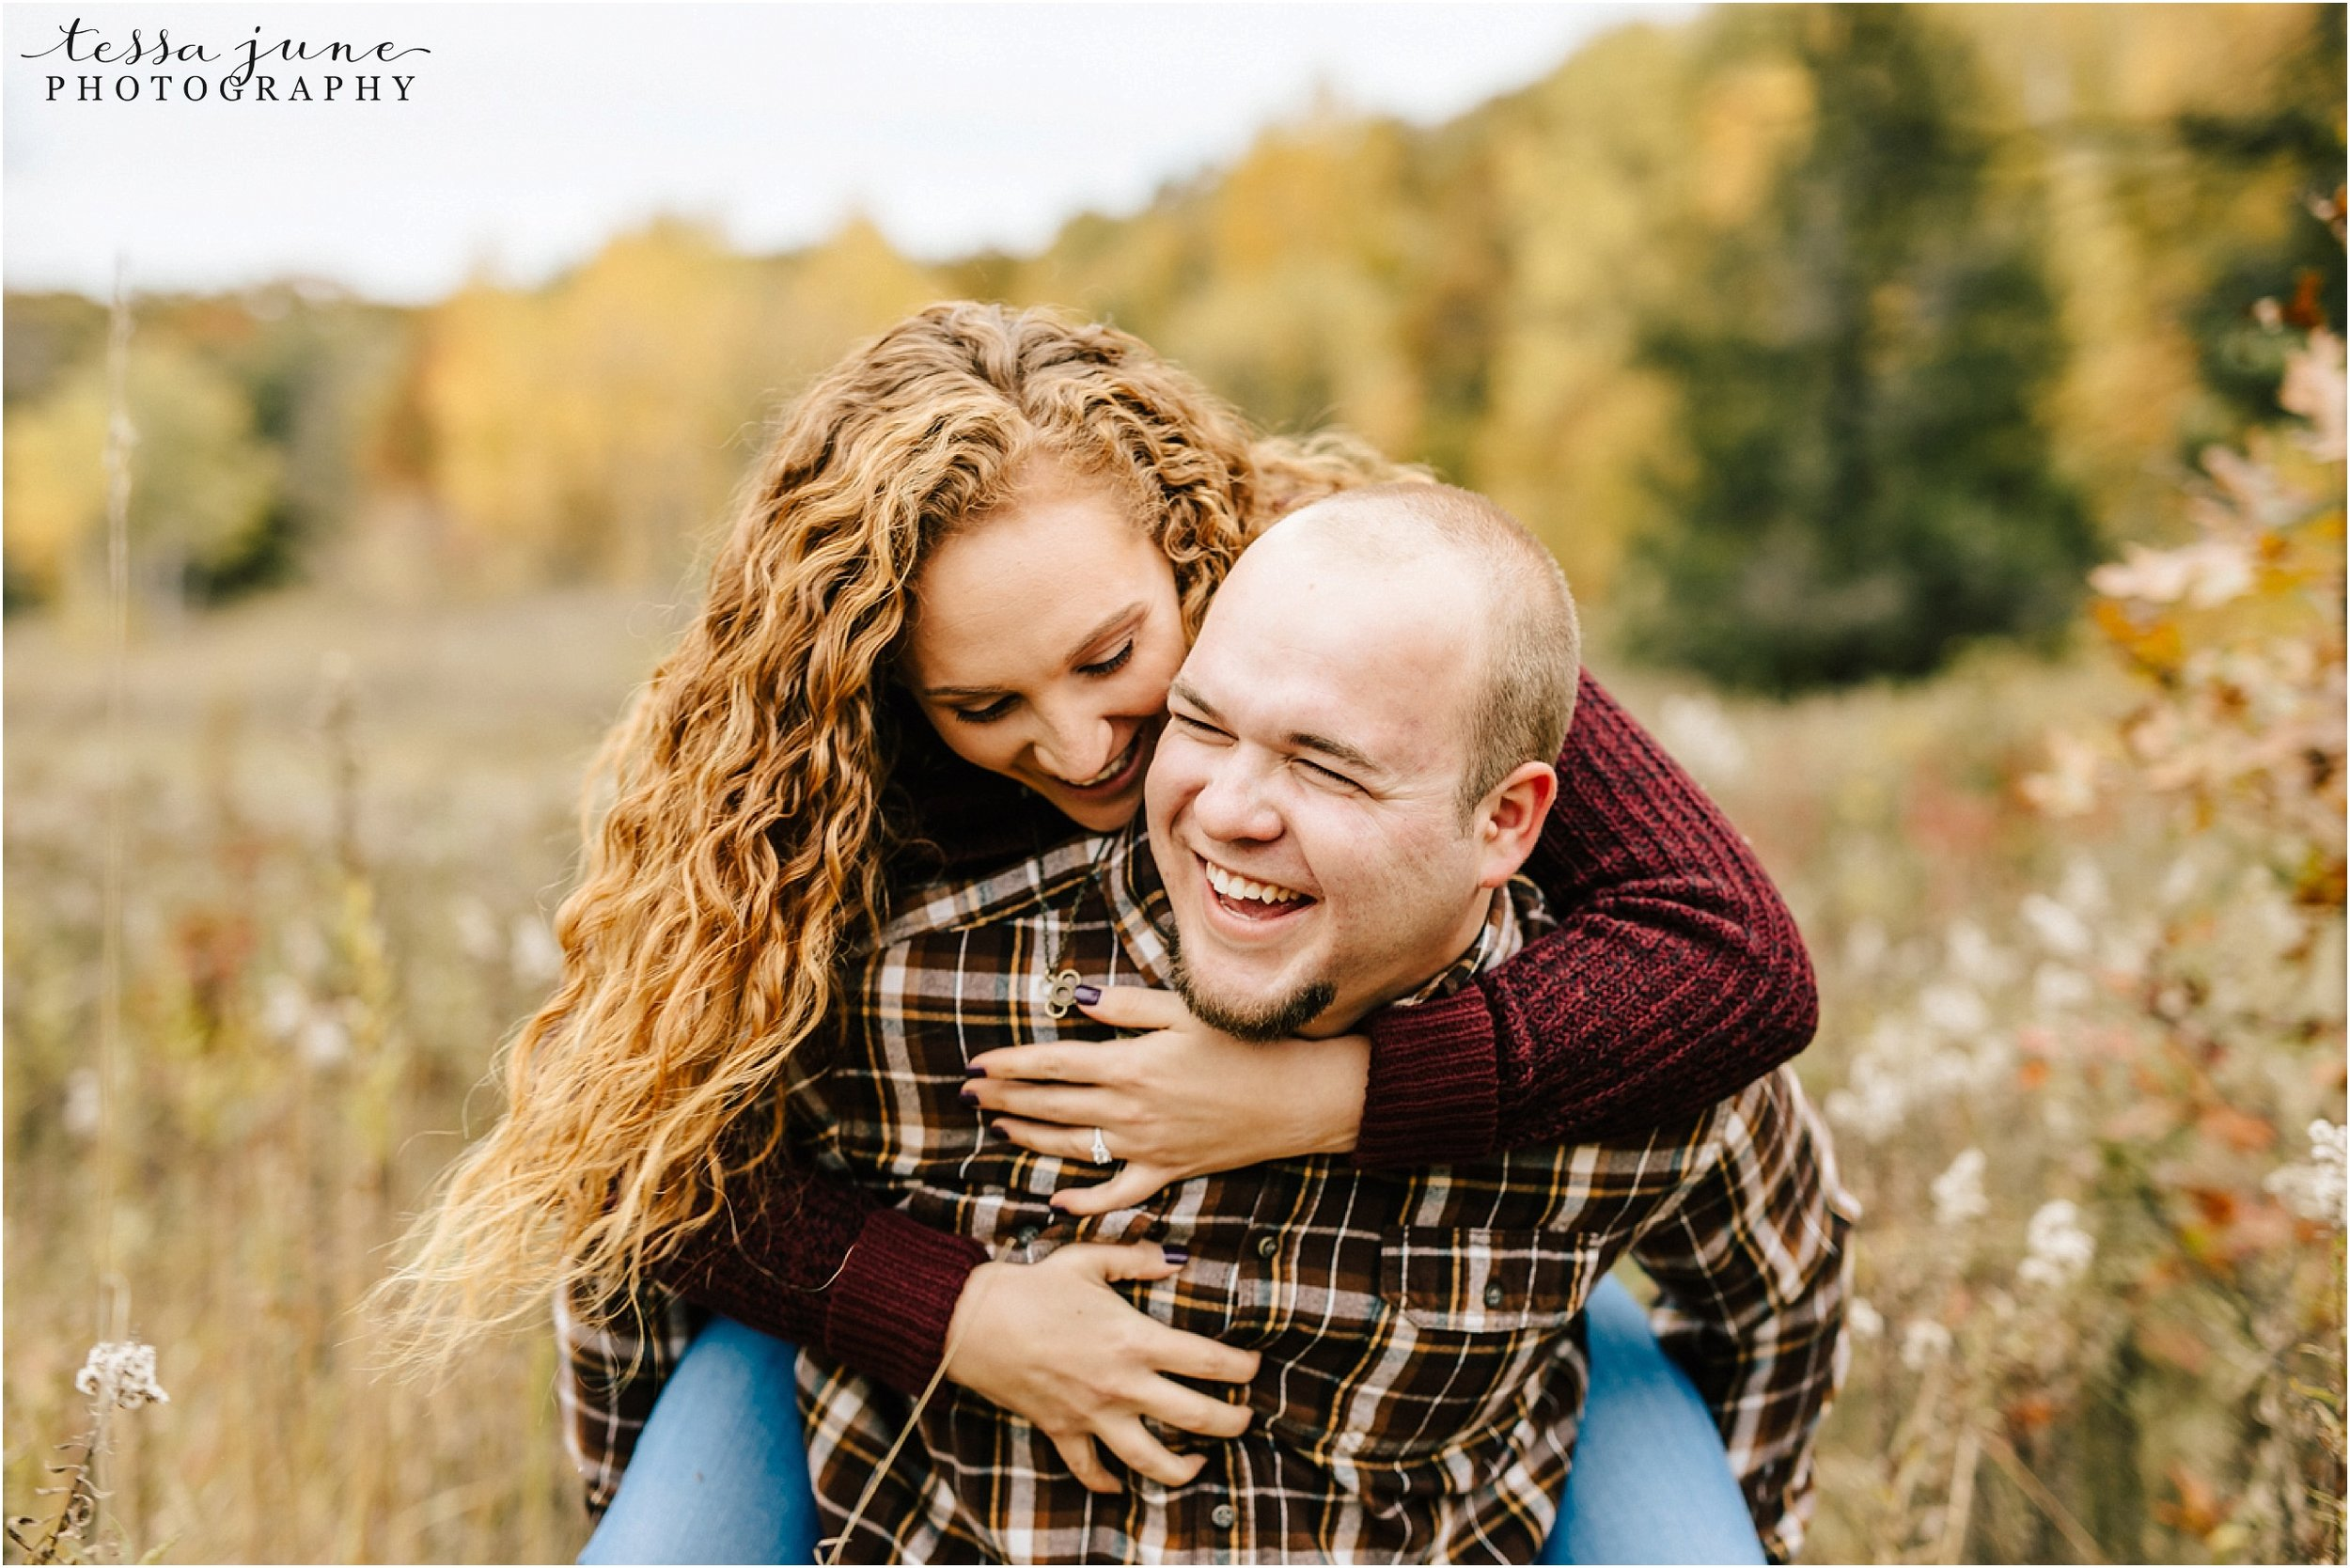 st-cloud-wedding-photographer-lake-maria-engagement-in-the-fall-19.jpg